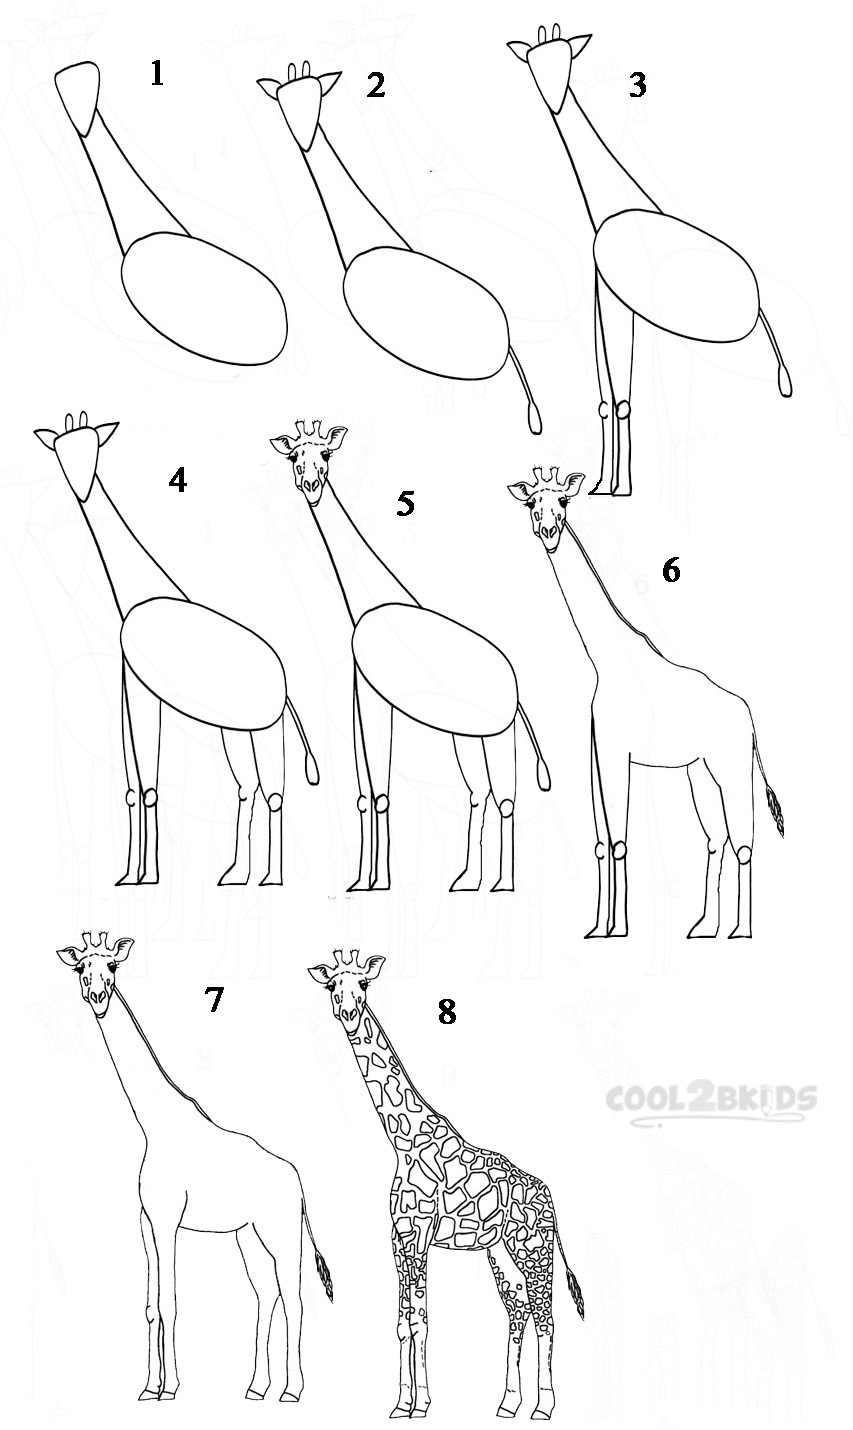 how to draw a giraffe step by step easy giraffe drawing lesson easy giraffe a by draw step how step to